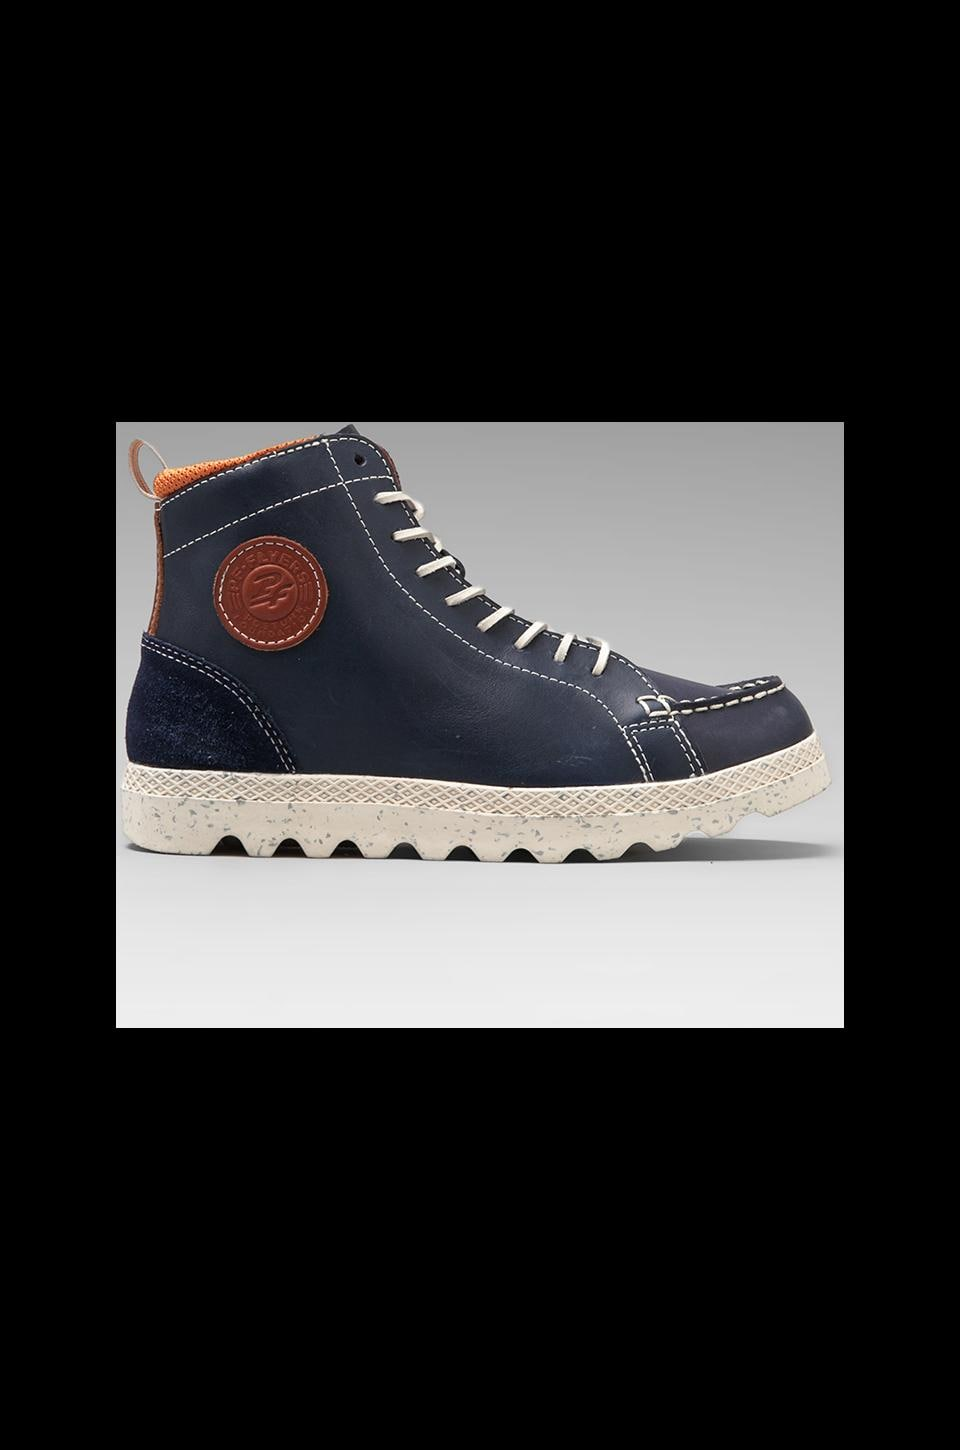 PF Flyers Brewster Boot in Navy